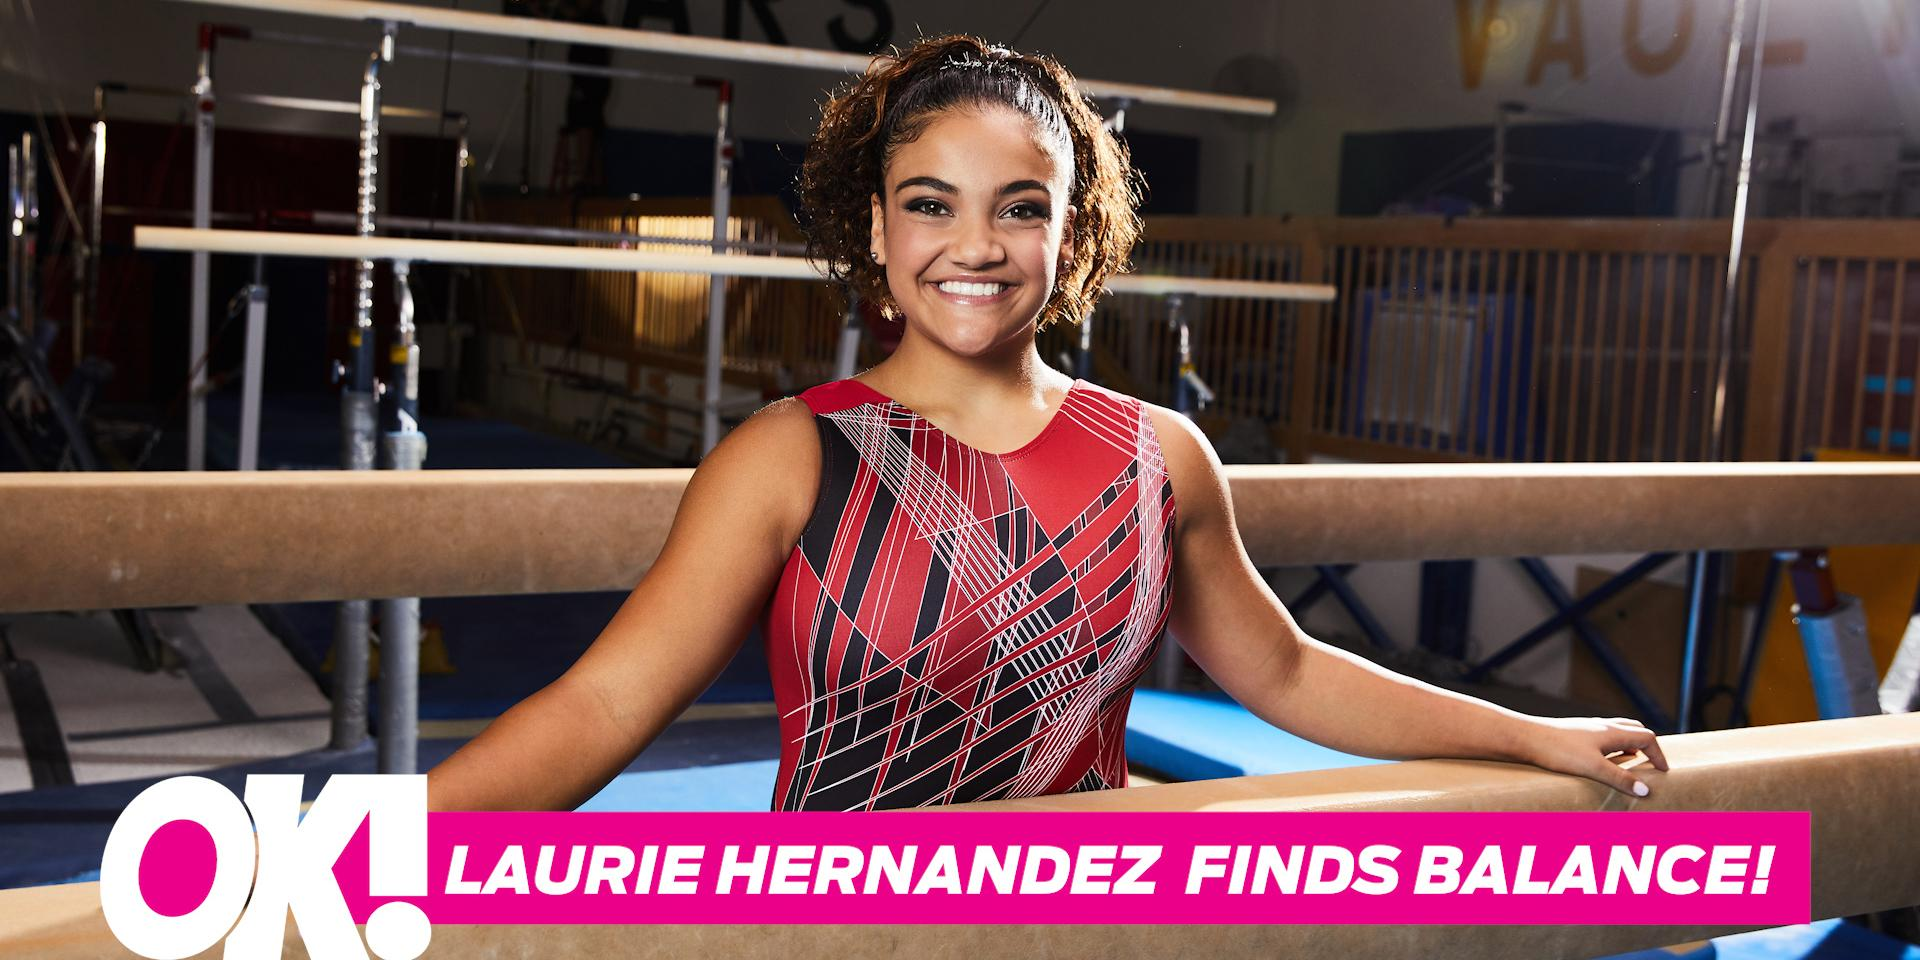 Laurie hernandez post olympics life